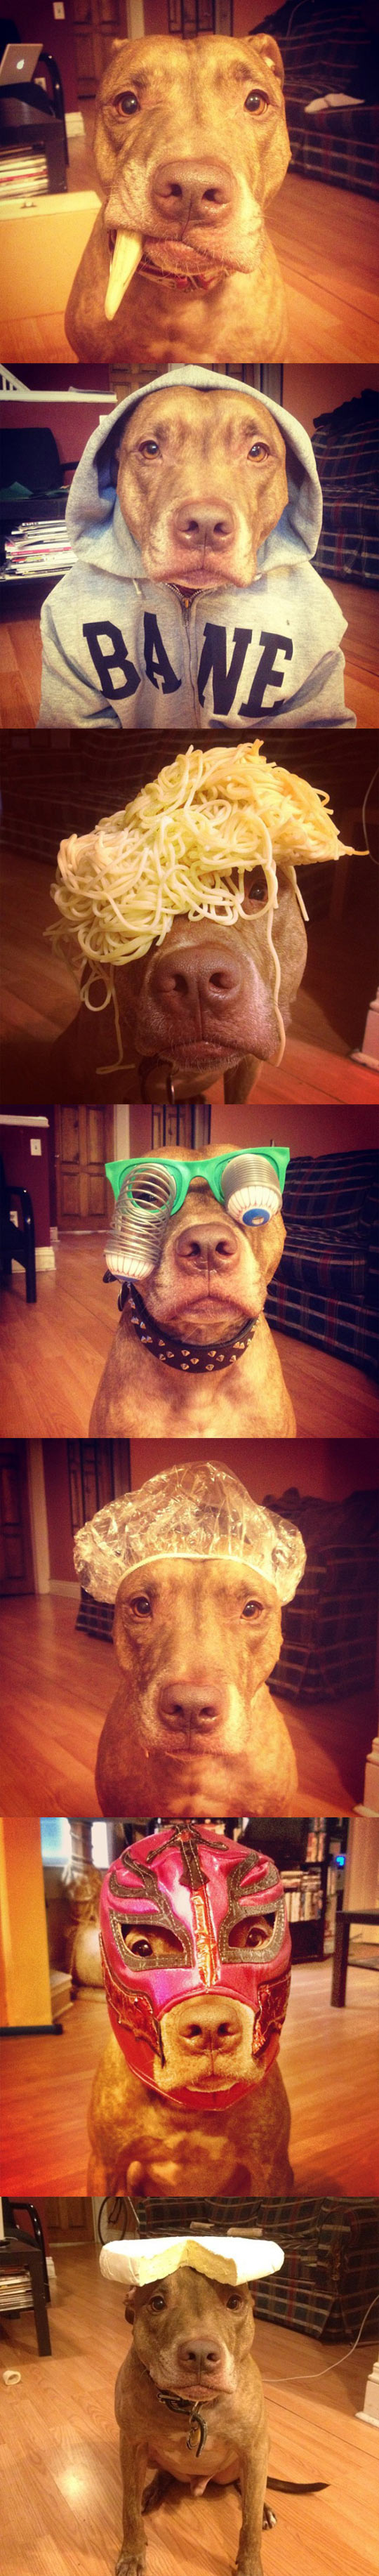 funny-dog-play-disguise-mask-hat